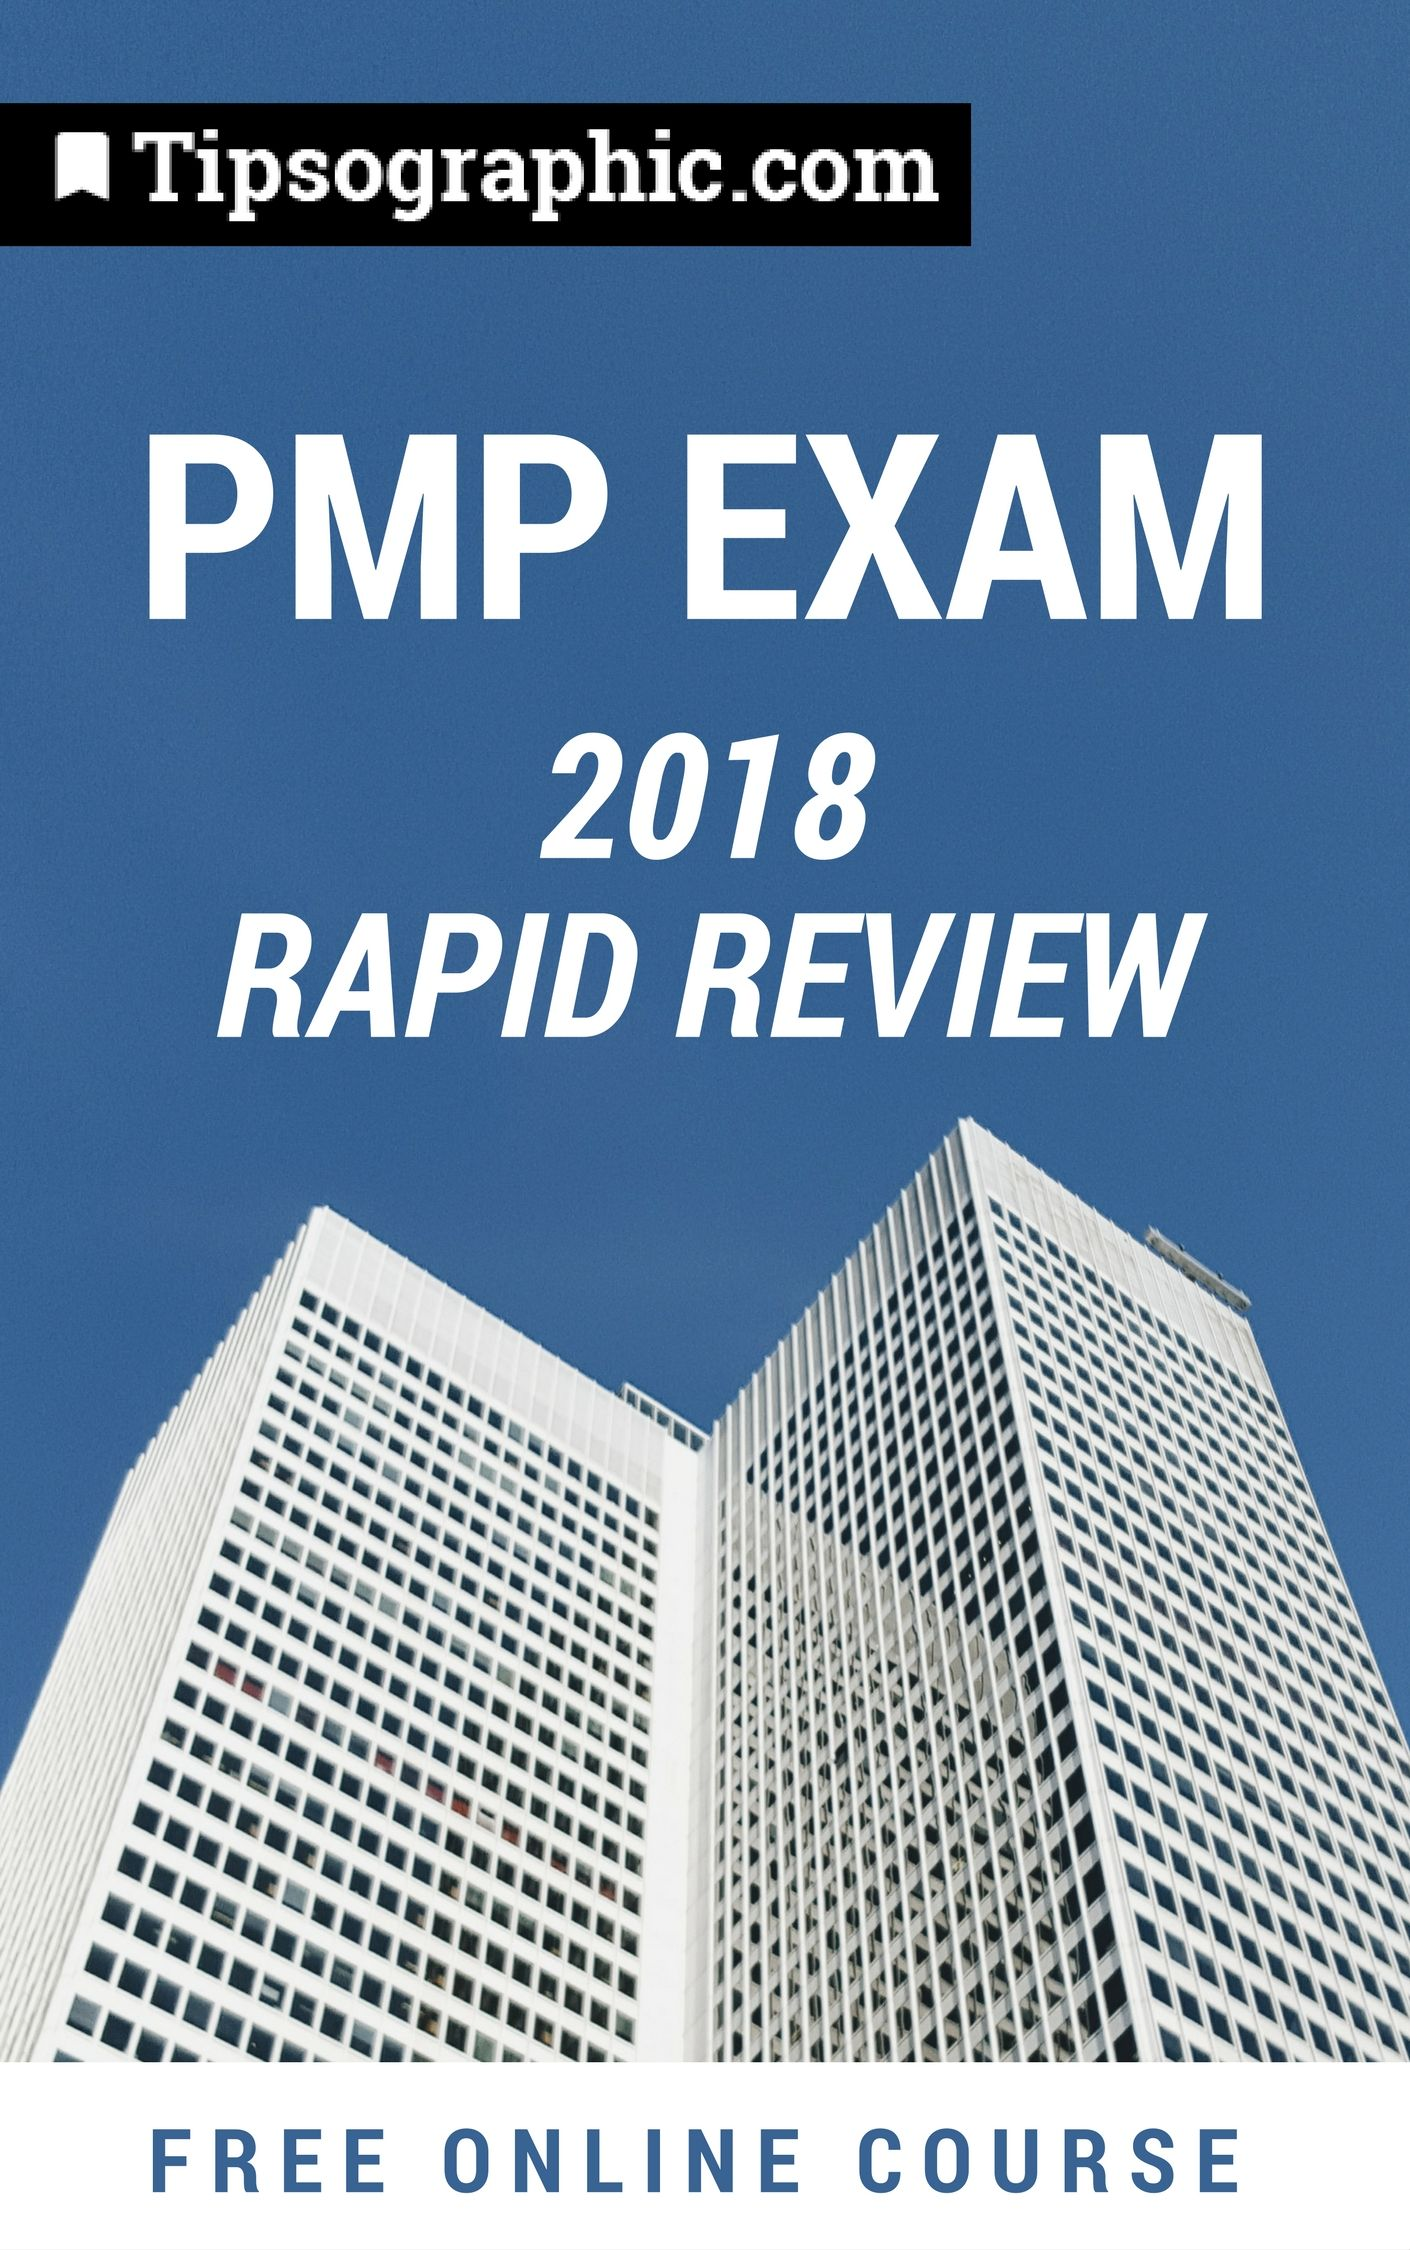 Pmp Exam 2018 Rapid Review Free Online Course Based On Pmbok6